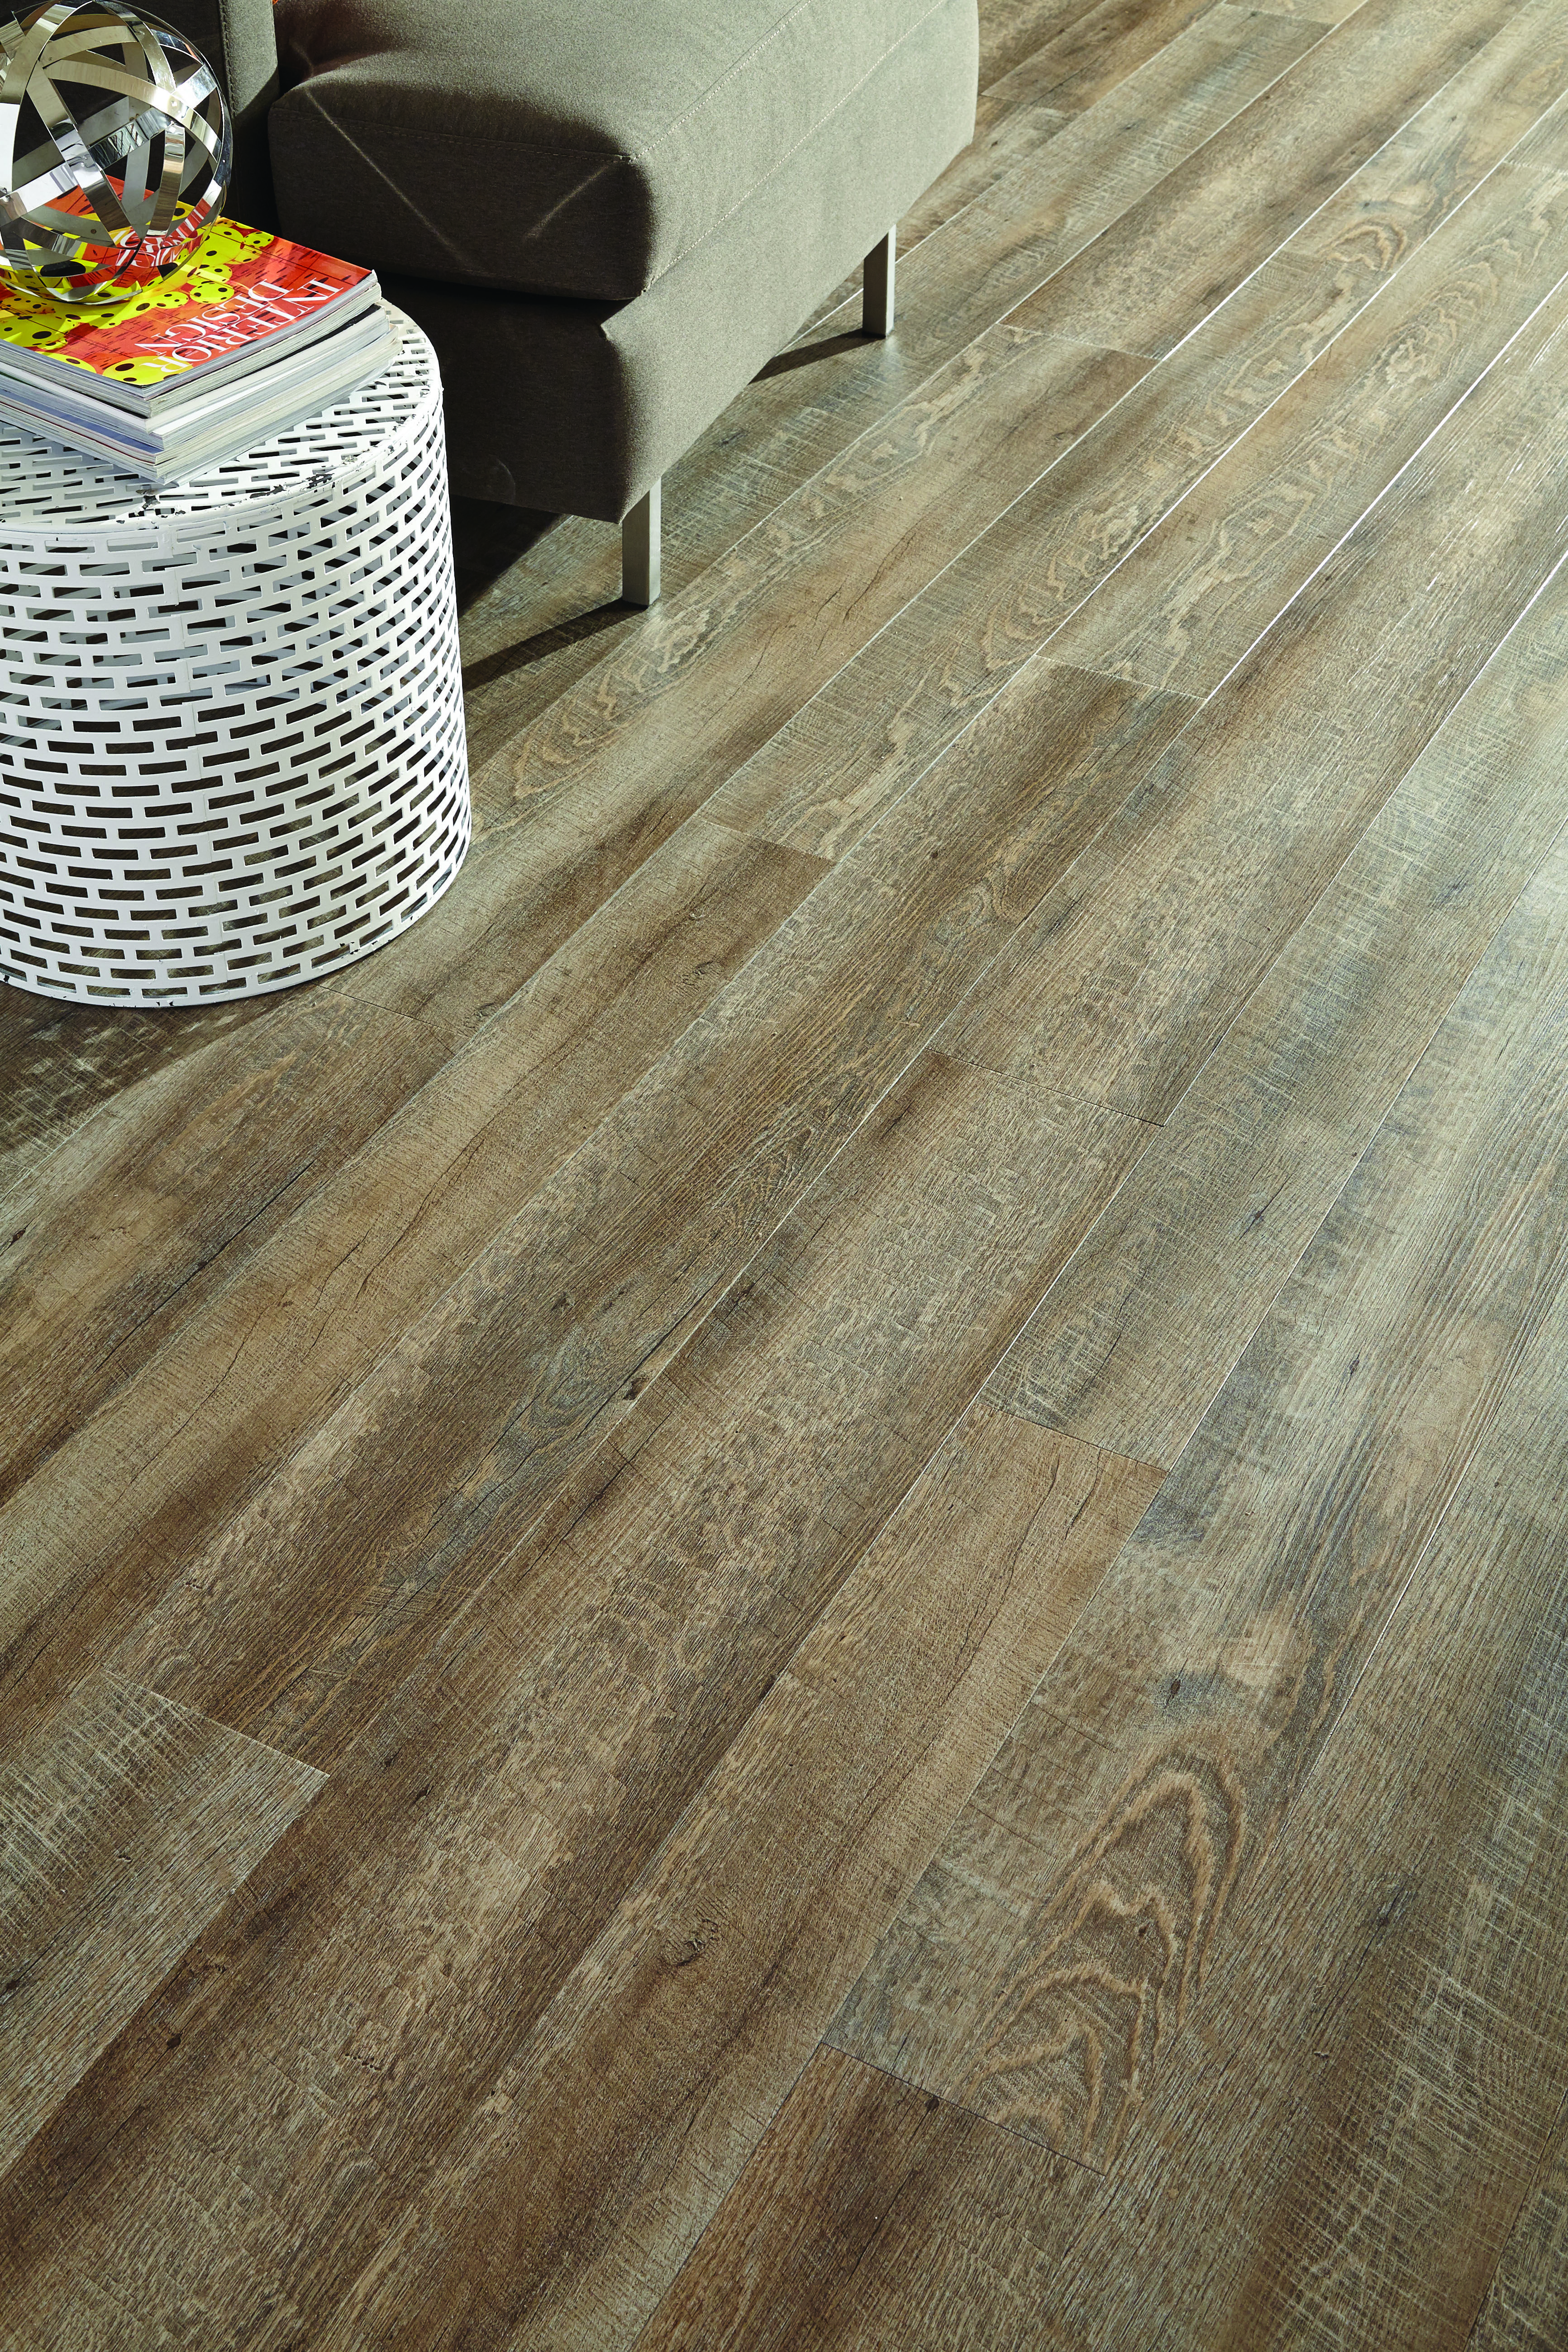 solidtech www here plank vinyl lvt floors planks it best the floor flooring mohawk from luxury awesome s lowes